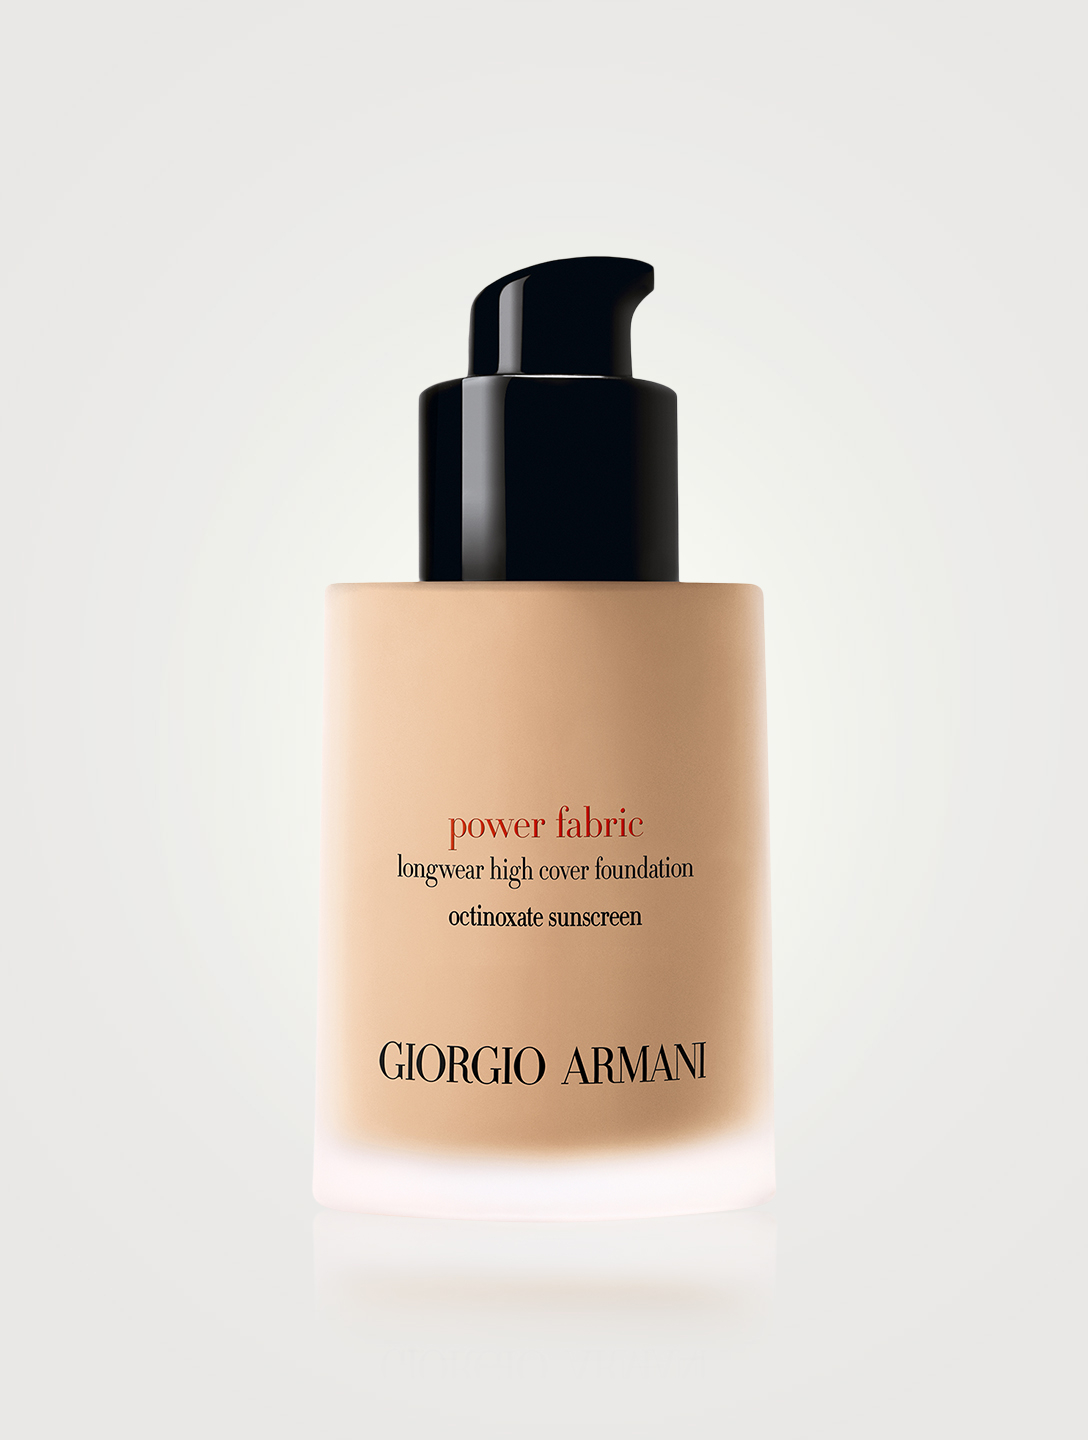 GIORGIO ARMANI Power Fabric Longwear High Cover Liquid Foundation SPF 25 Beauty Neutral